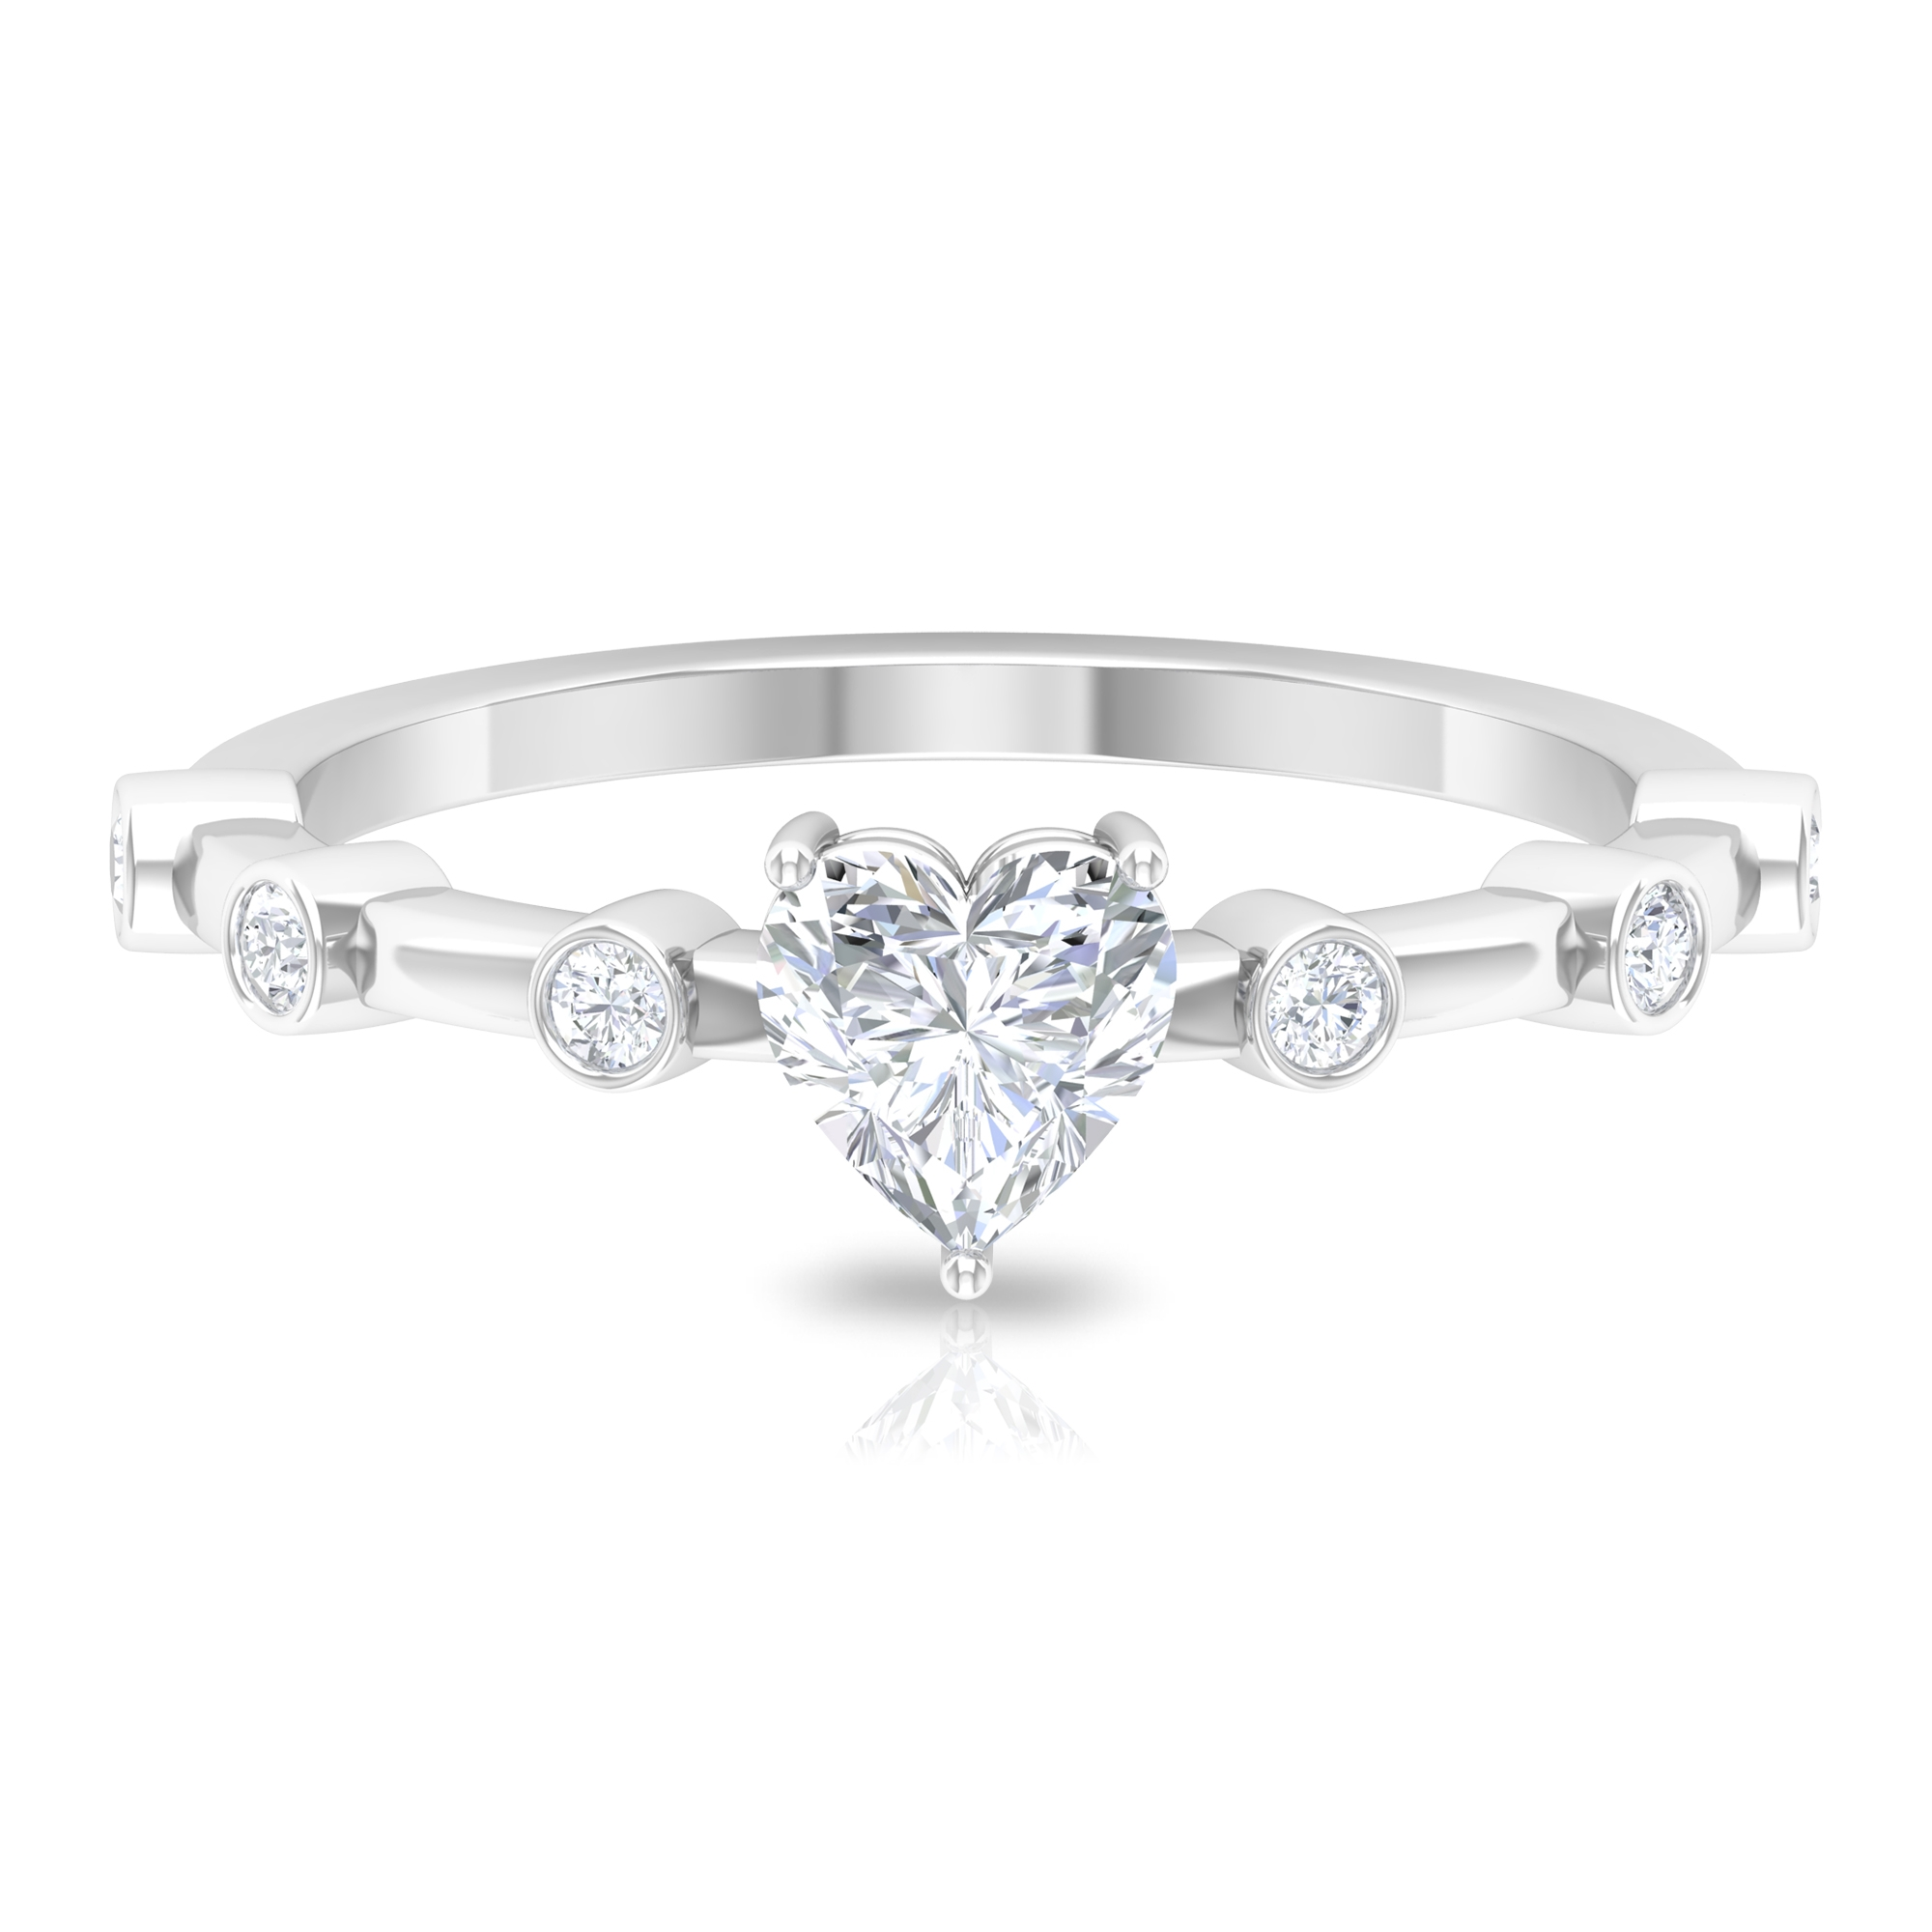 3/4 CT Heart Shape Diamond Solitaire Ring with Spaced Set Side Stones